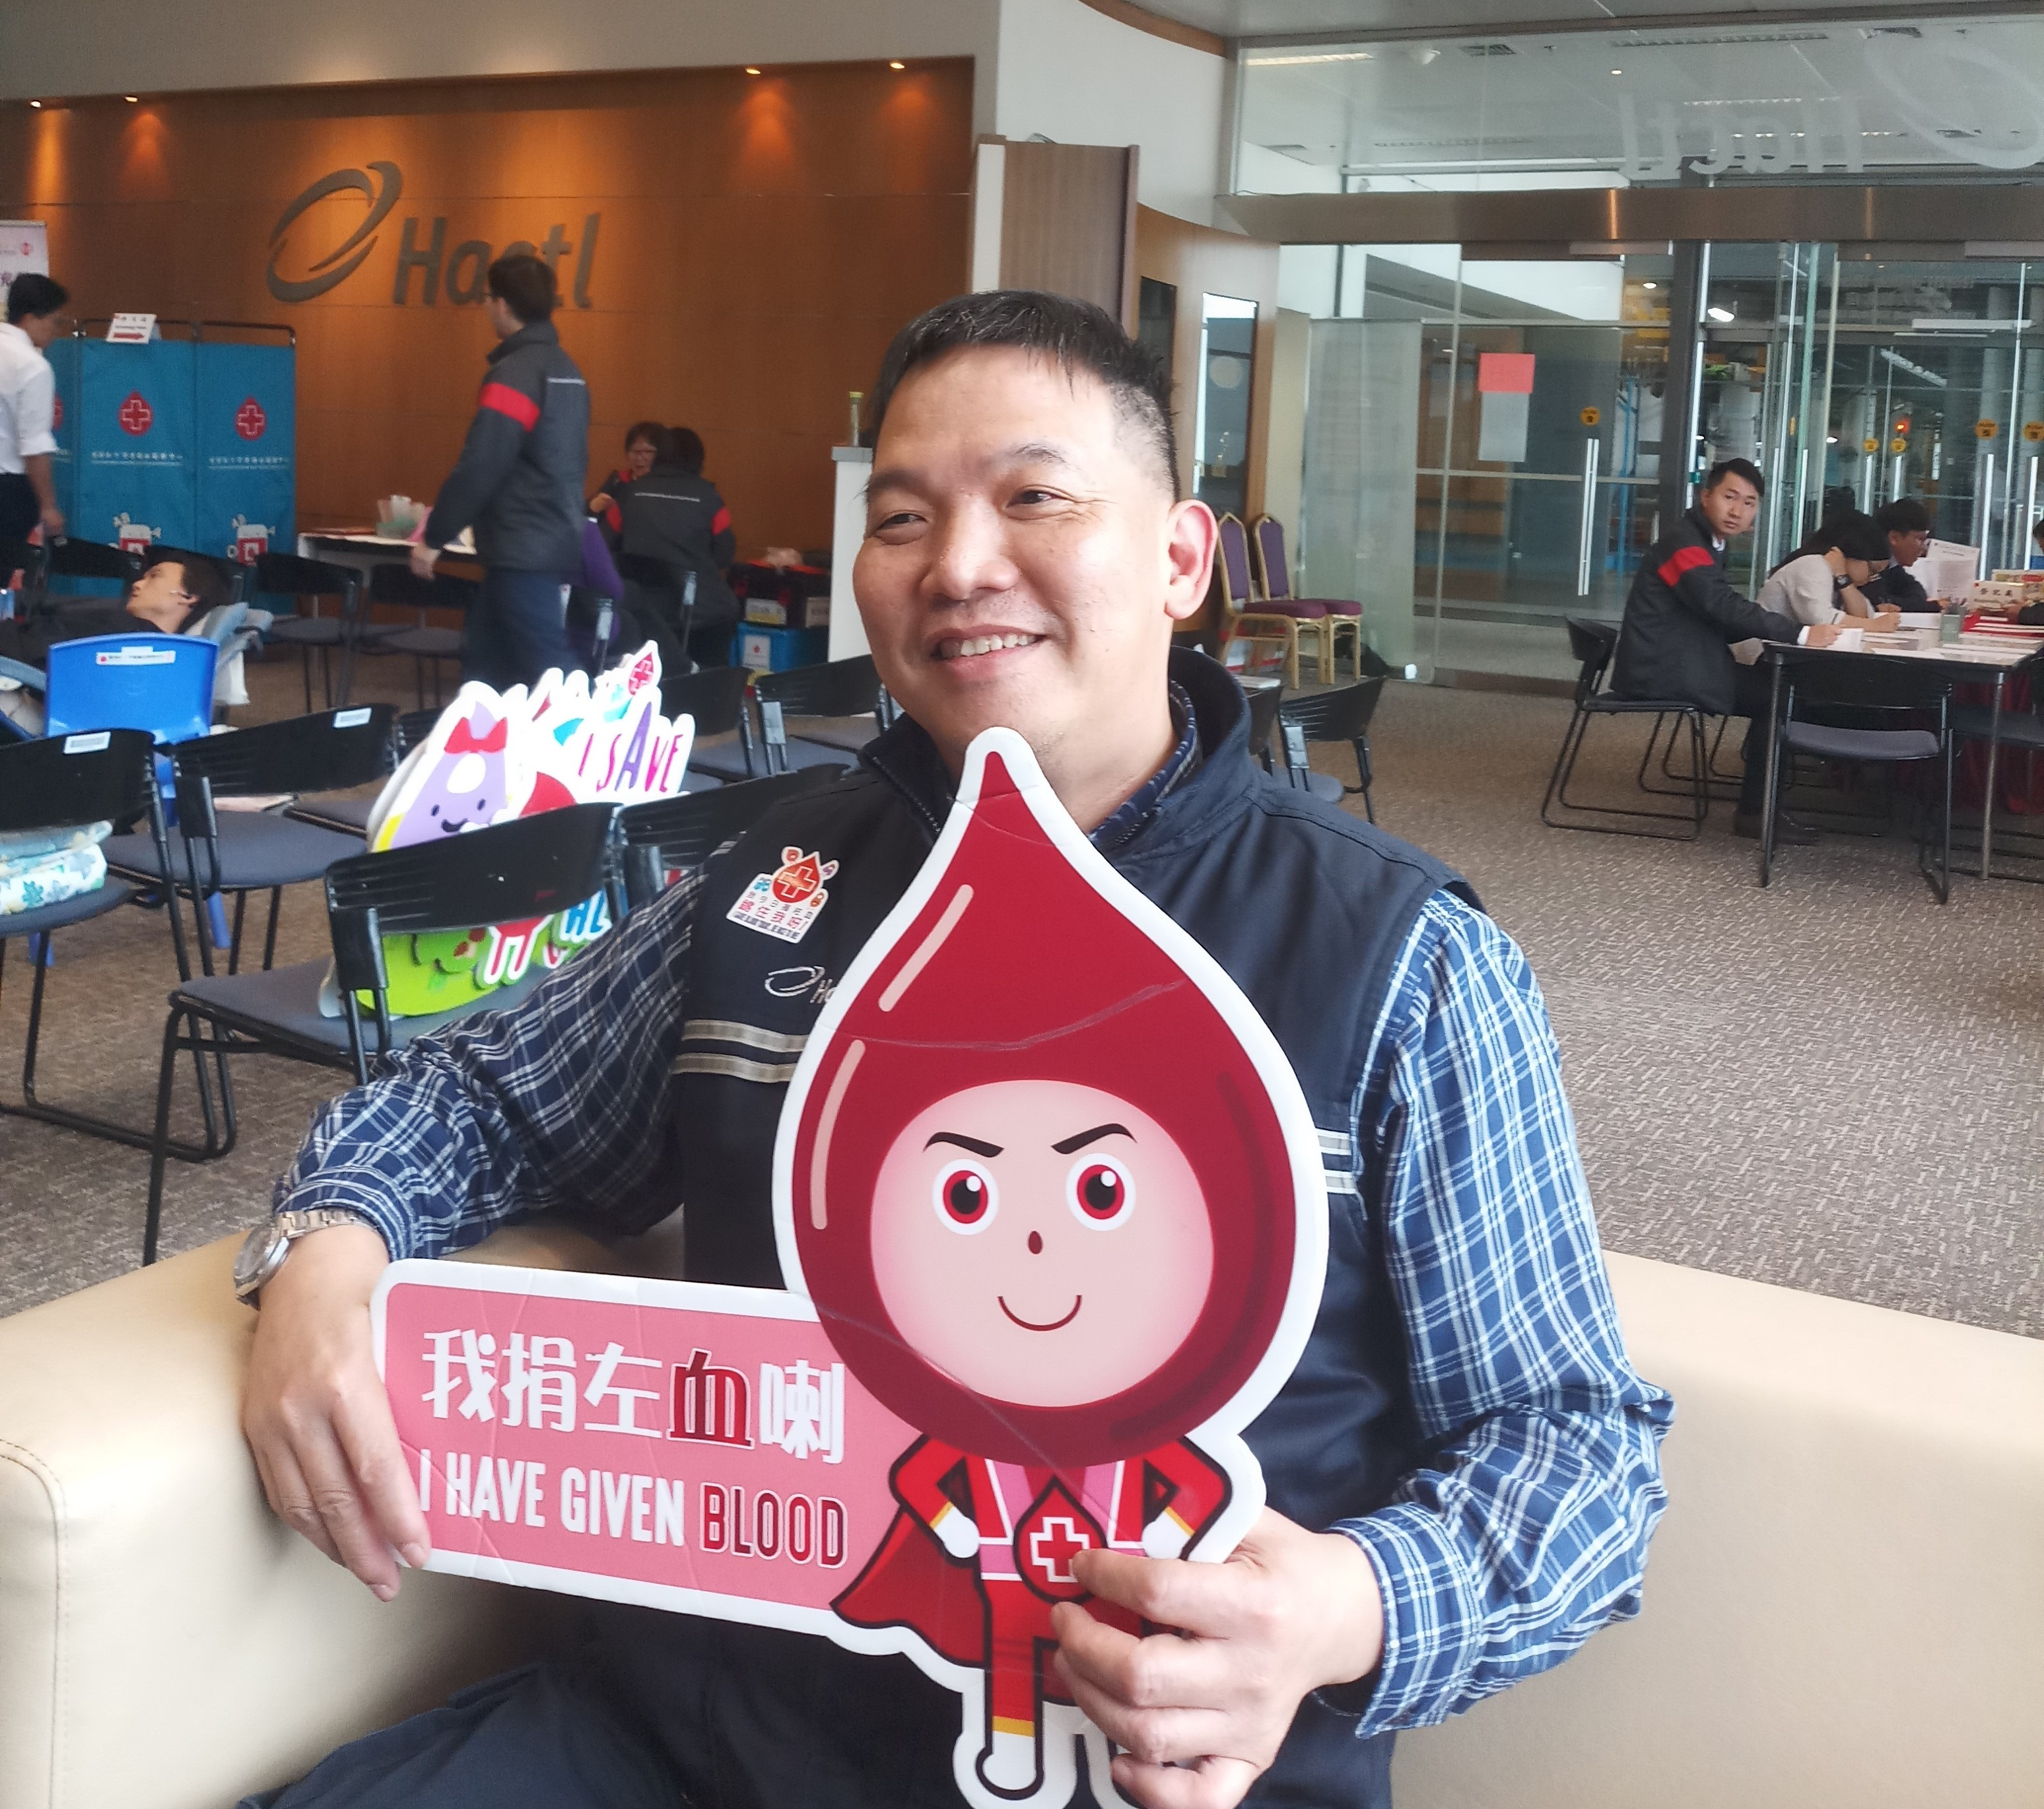 Blood Donation Day participants up 50%